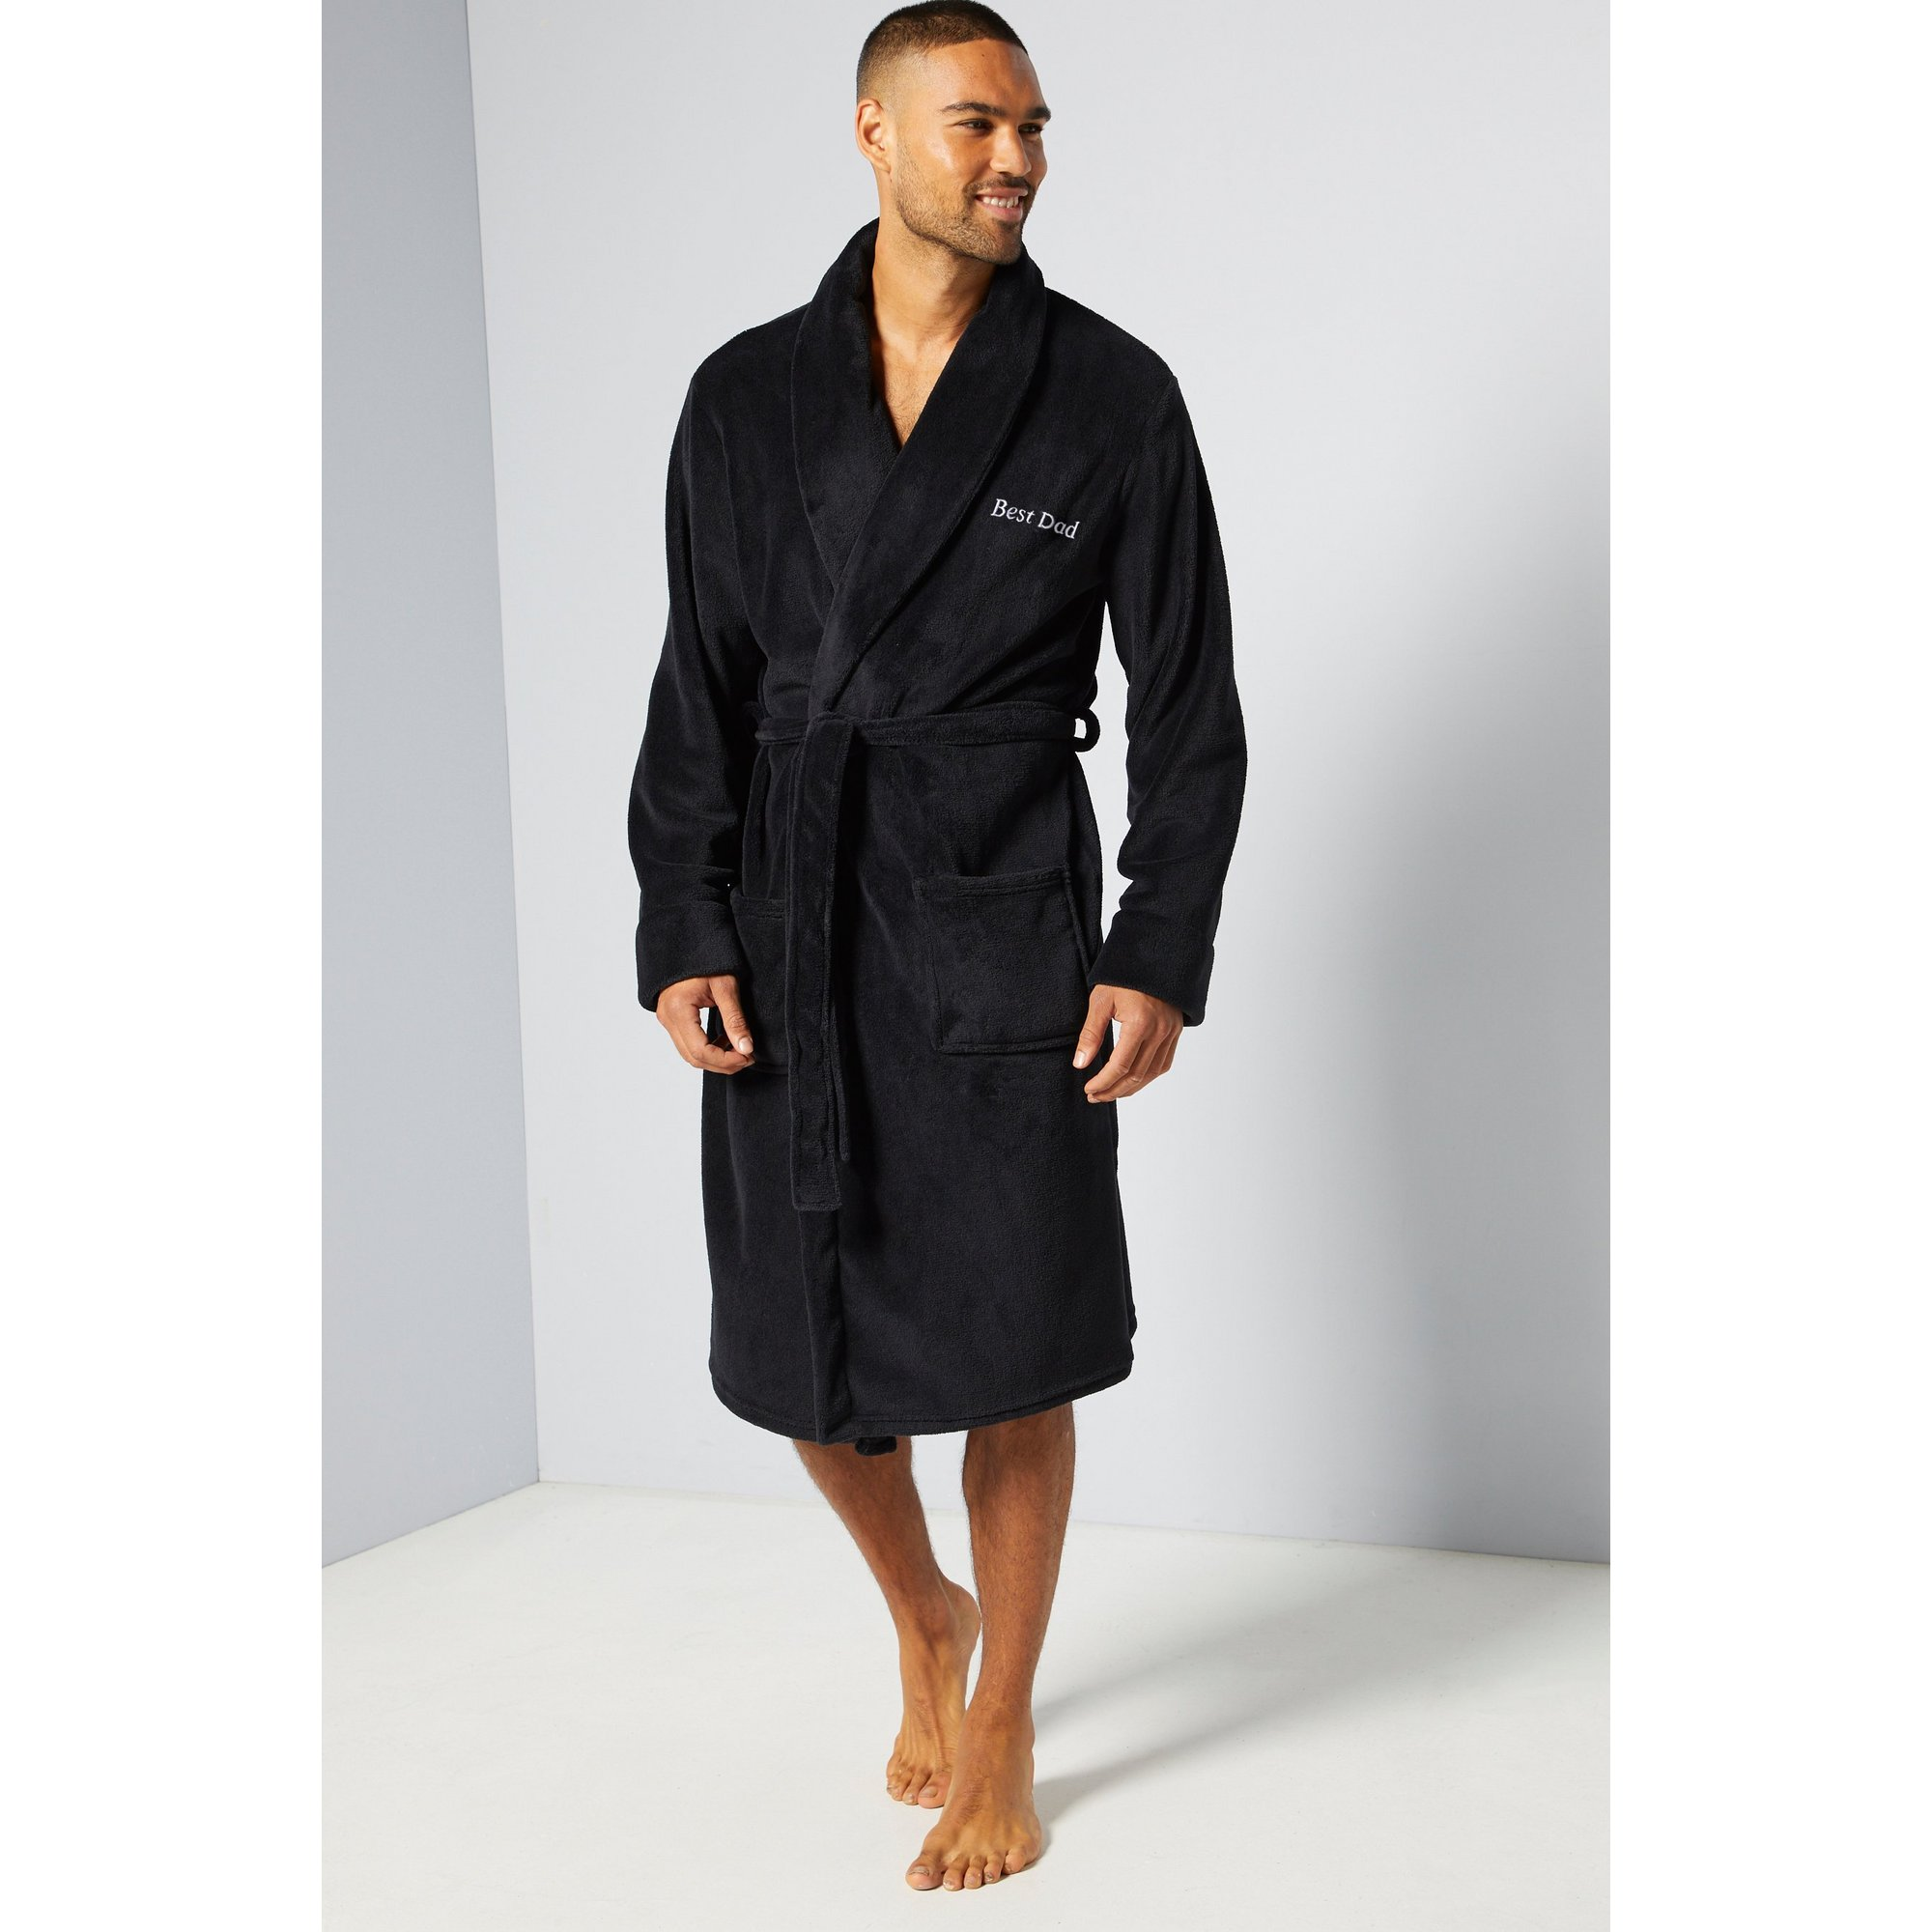 Image of Embroidered Personalised Mens Robe